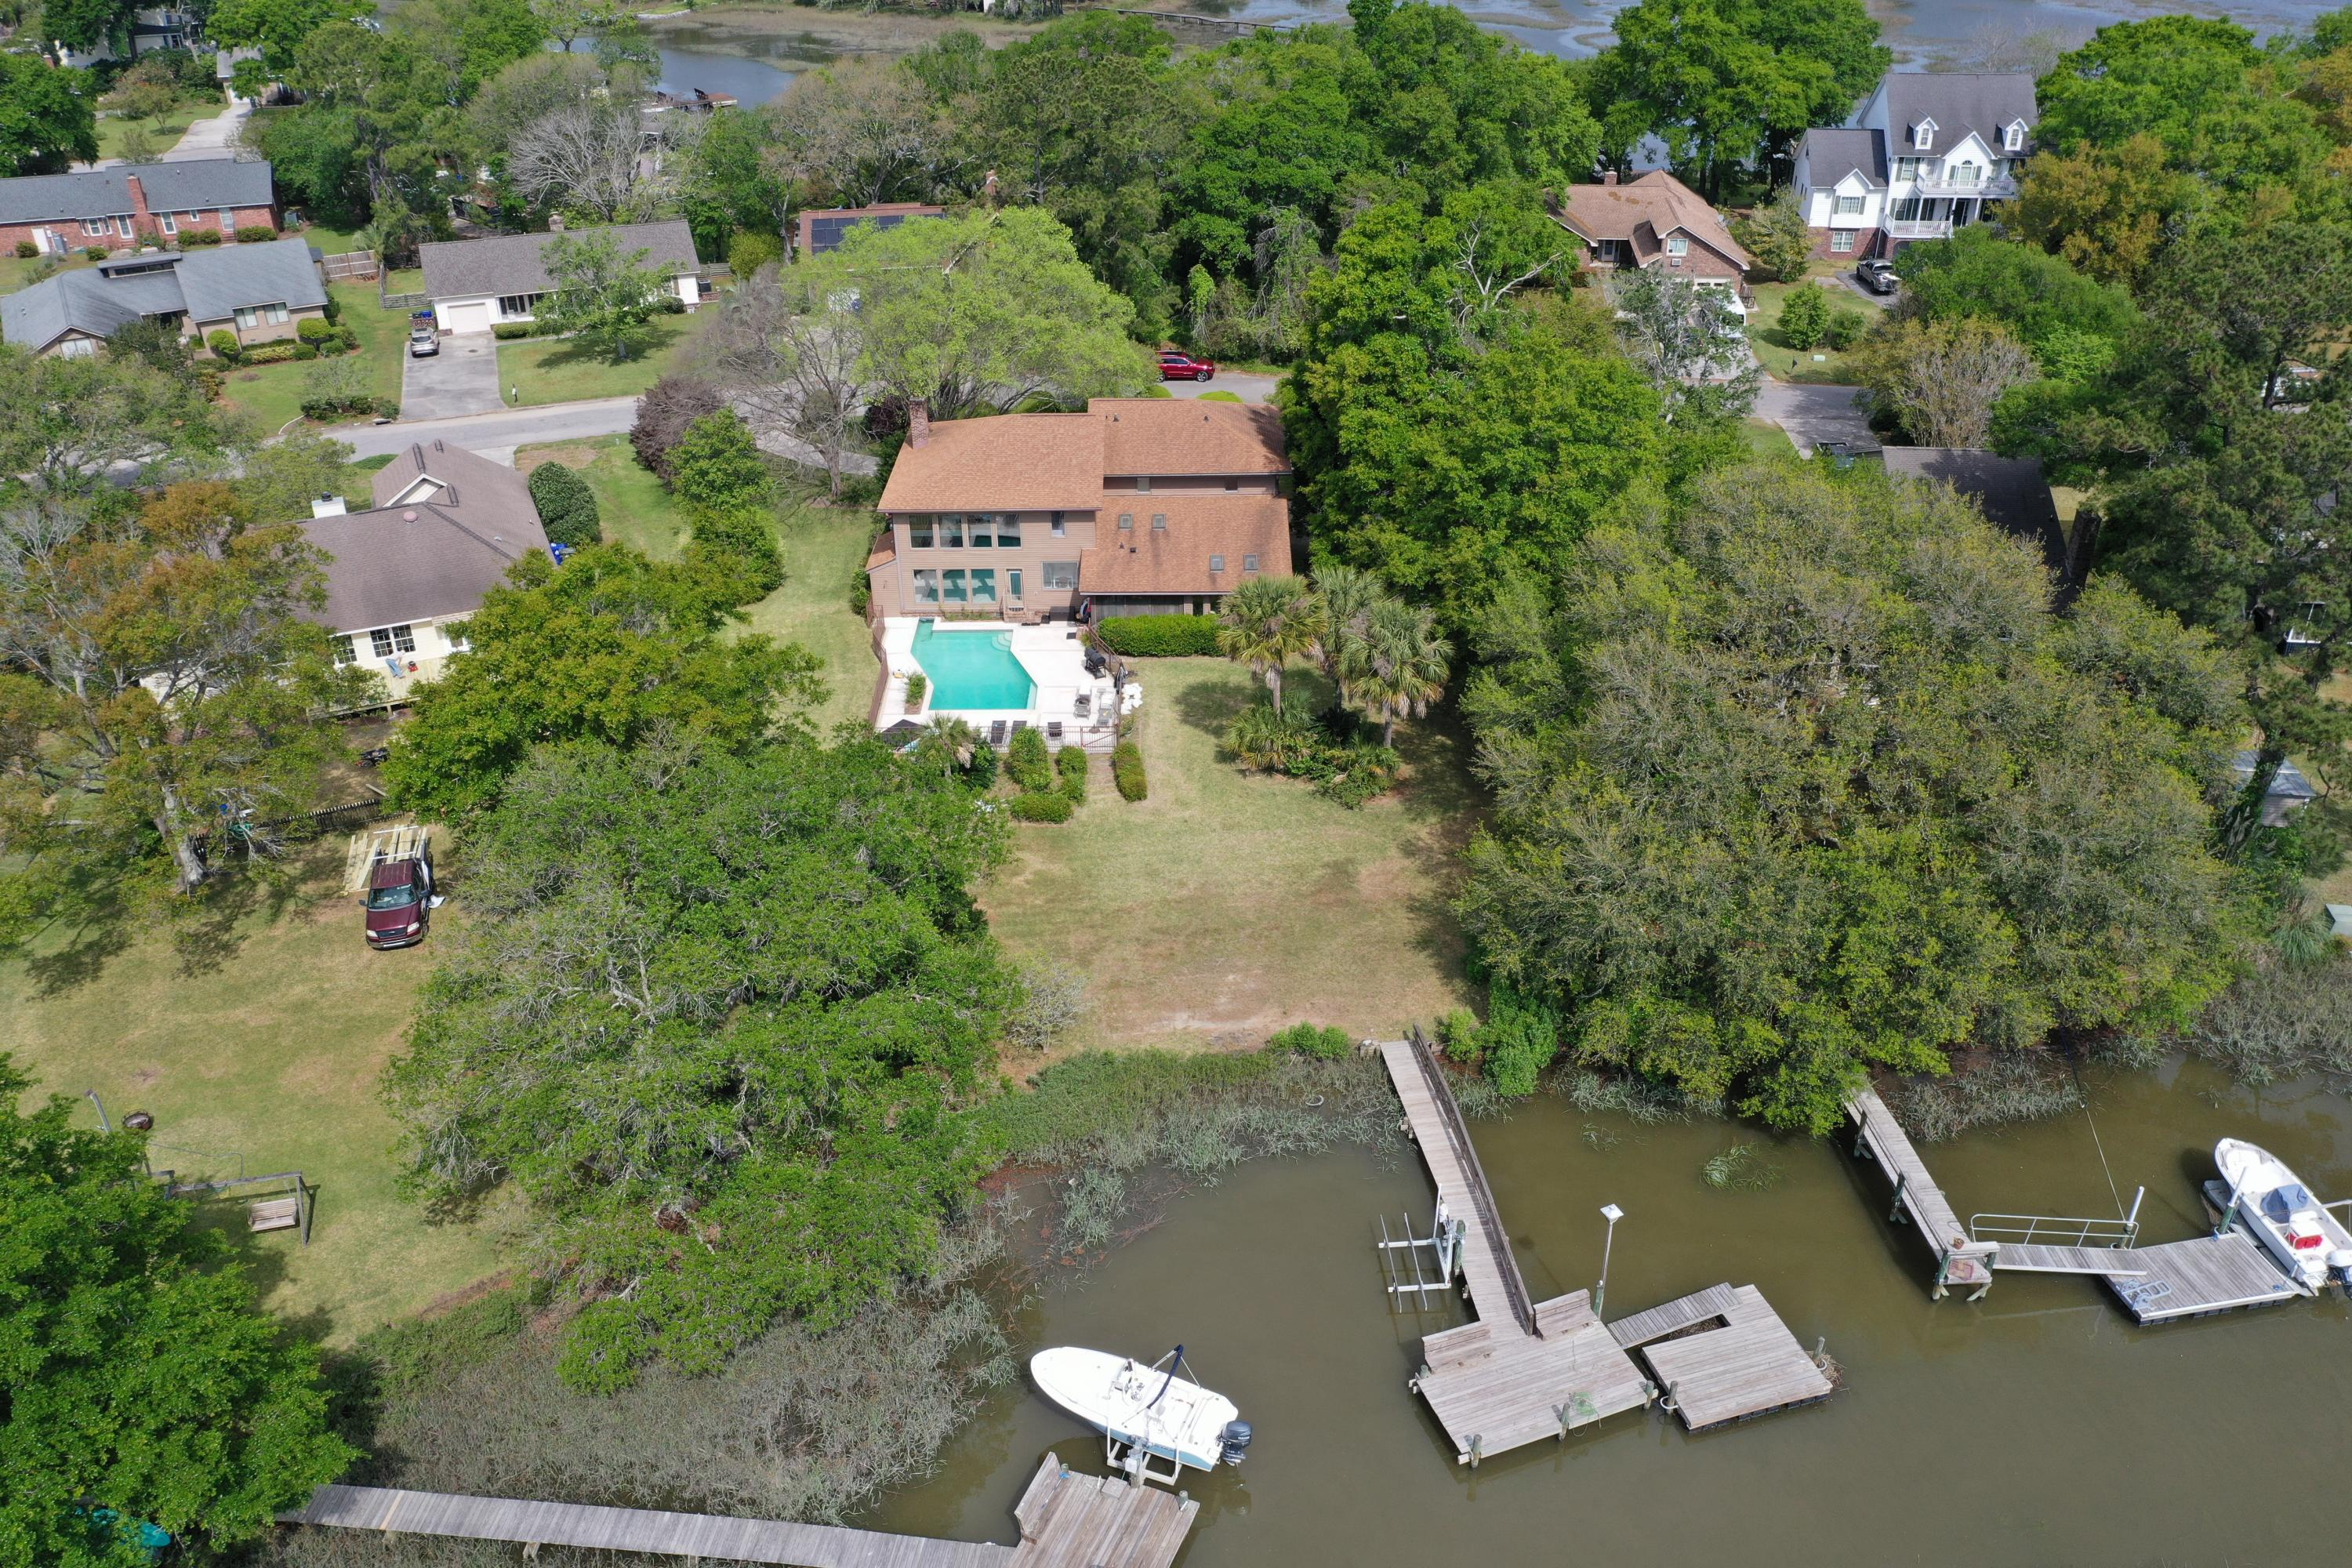 141 Oyster Point NULL Charleston $925,000.00